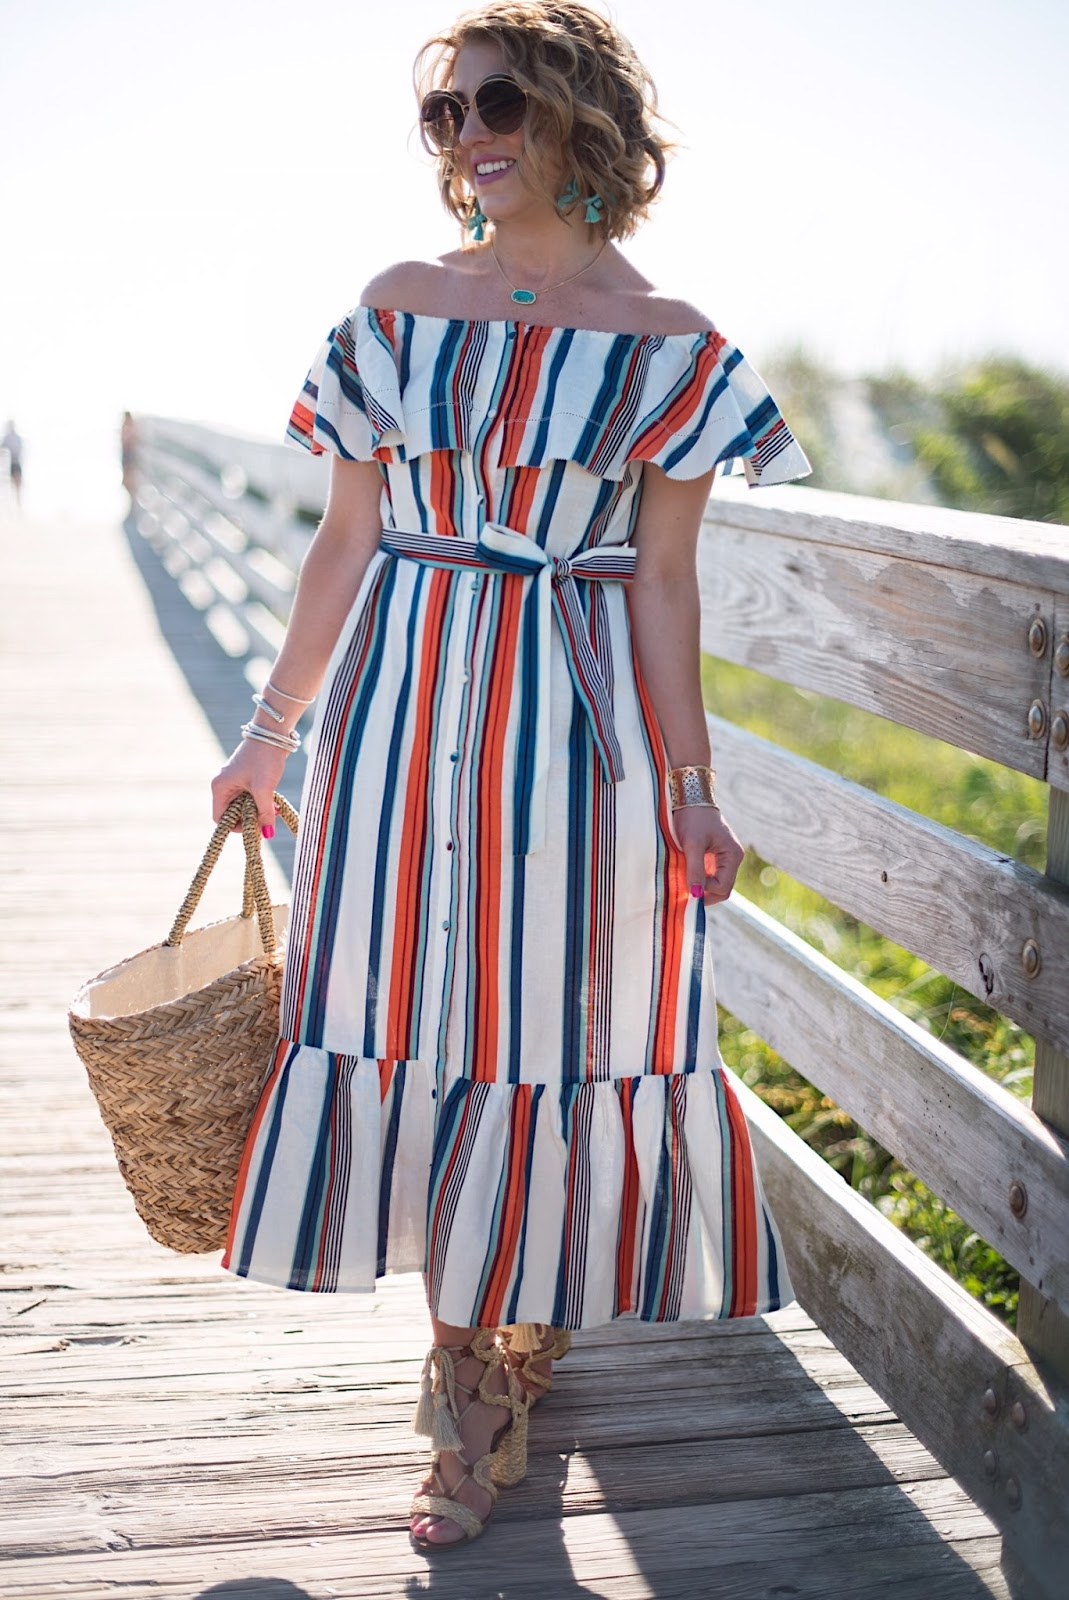 Striped Maxi Dress - Click through to see more on Something Delightful Blog!